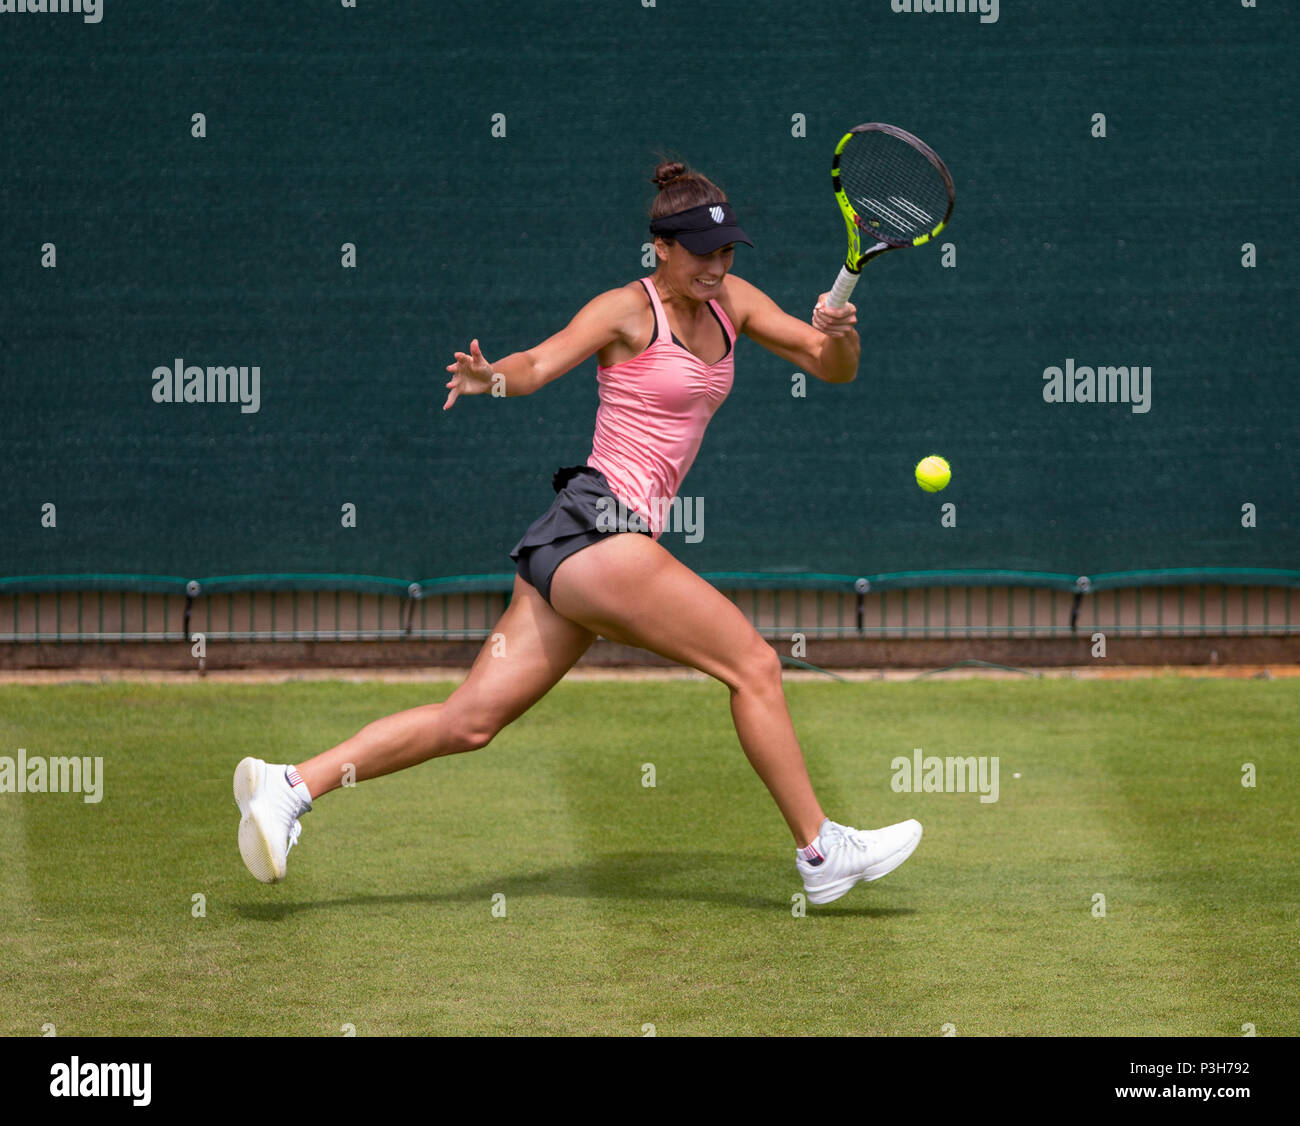 Edgbaston Priory Club, Birmingham, UK. 18th June, 2018. Nature Valley Classic Tennis; Dalila JAKUPOVIC (SLO) running backhand in her match against Bernarda PERA (USA) Credit: Action Plus Sports/Alamy Live News - Stock Image